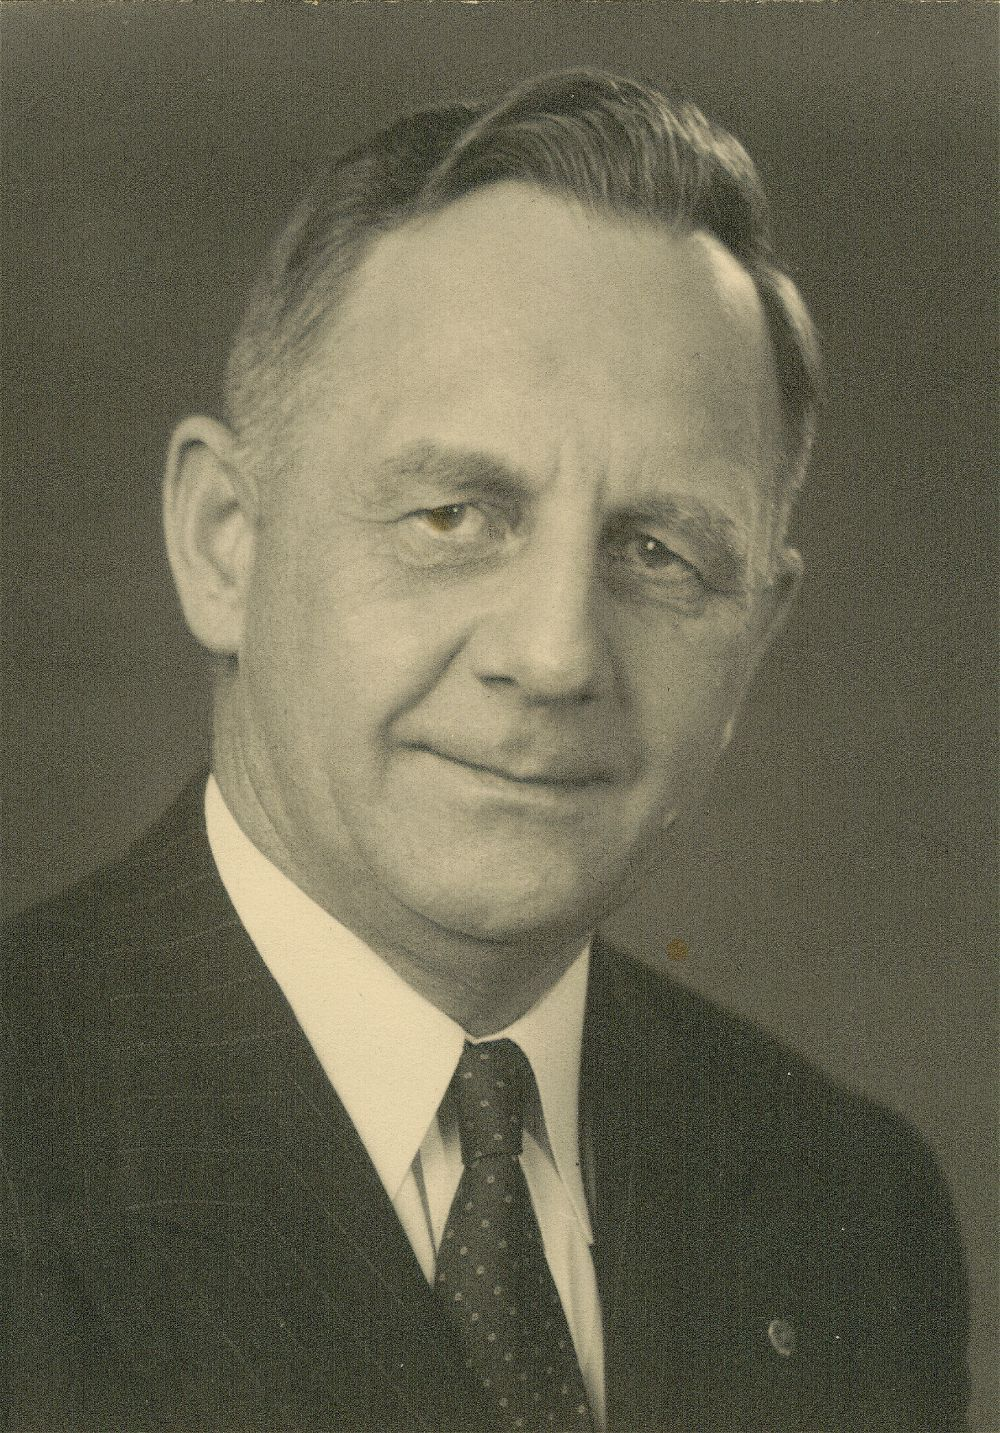 Frank Carlson, Kansas Governor and United States Senator